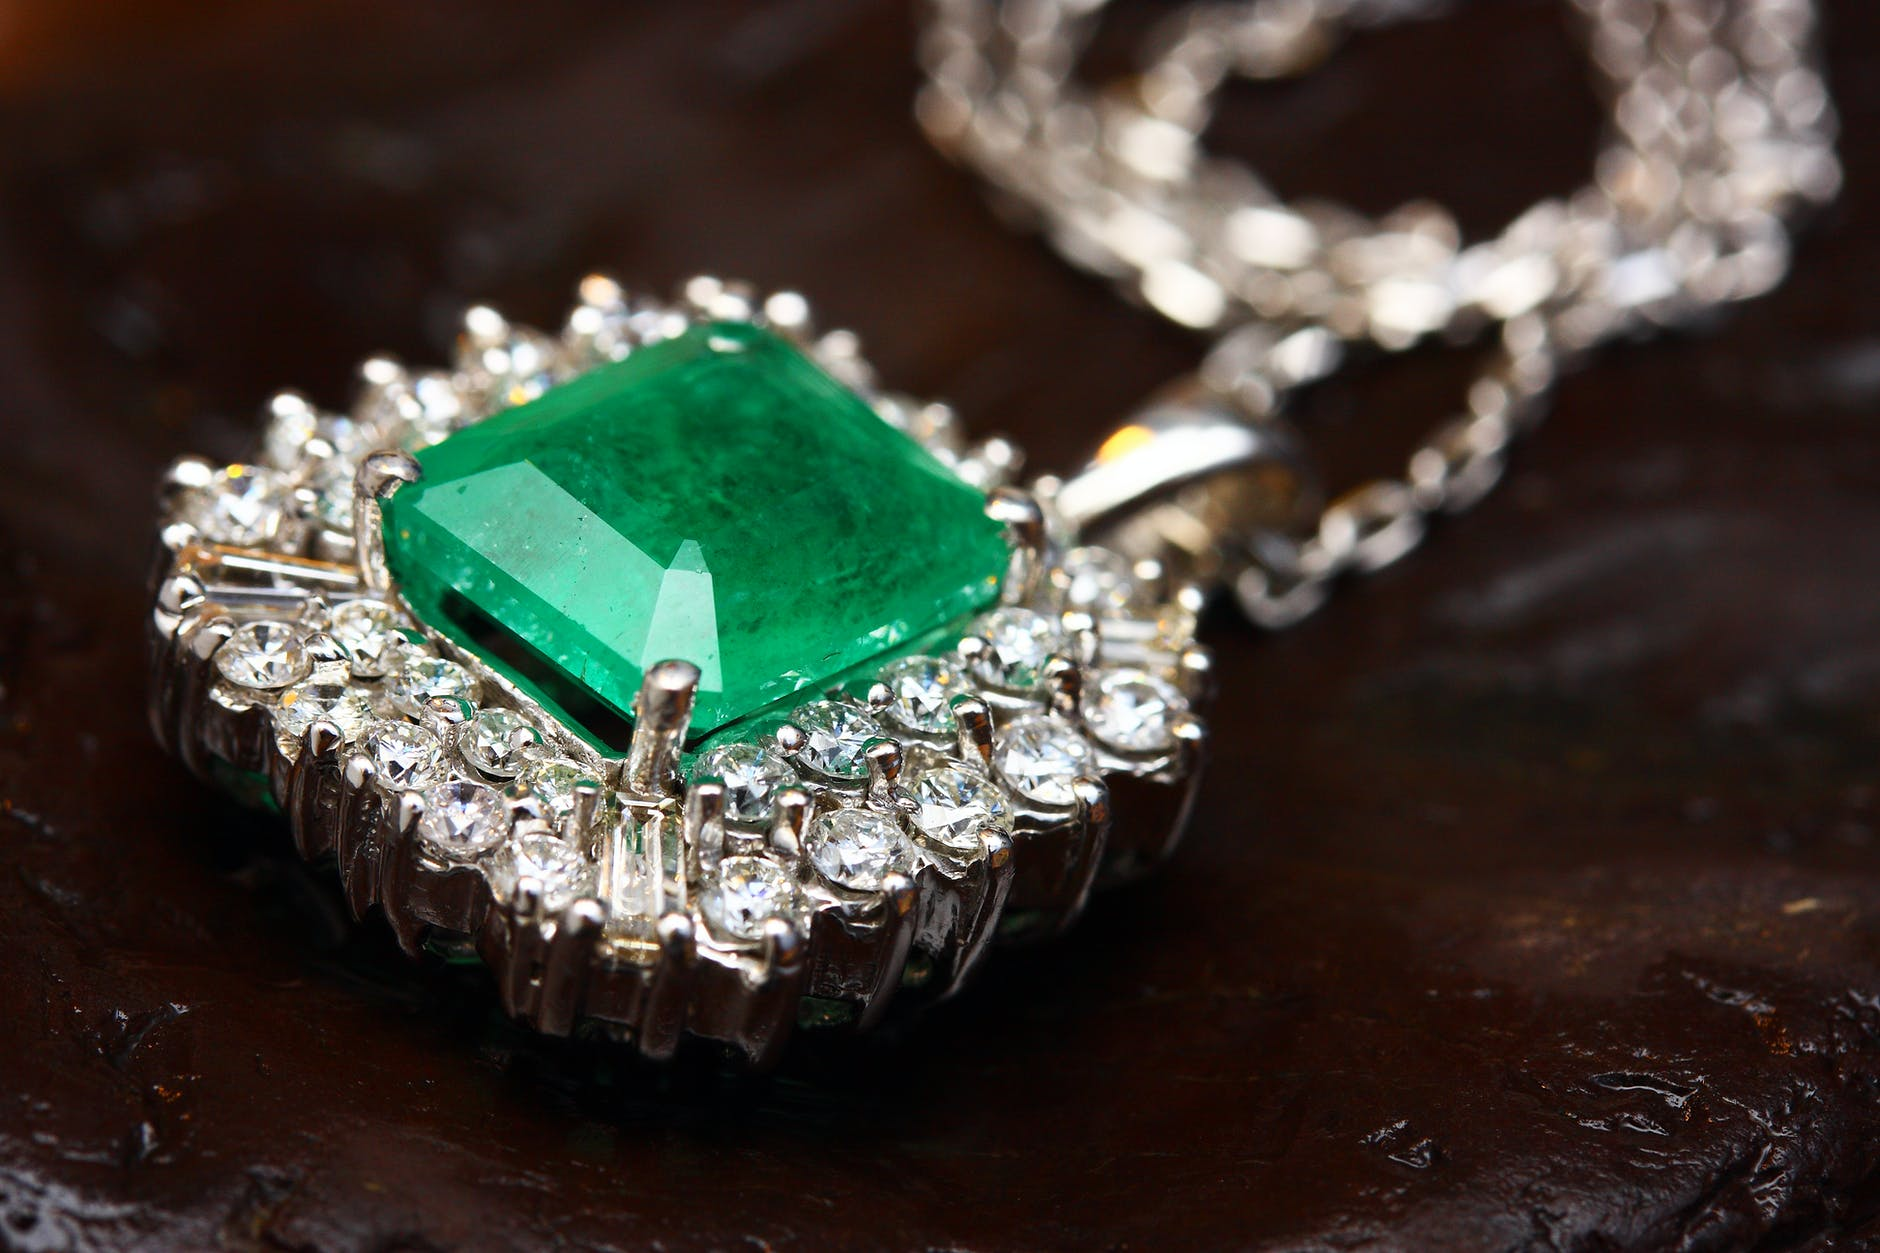 silver colored pendant with green gemstone